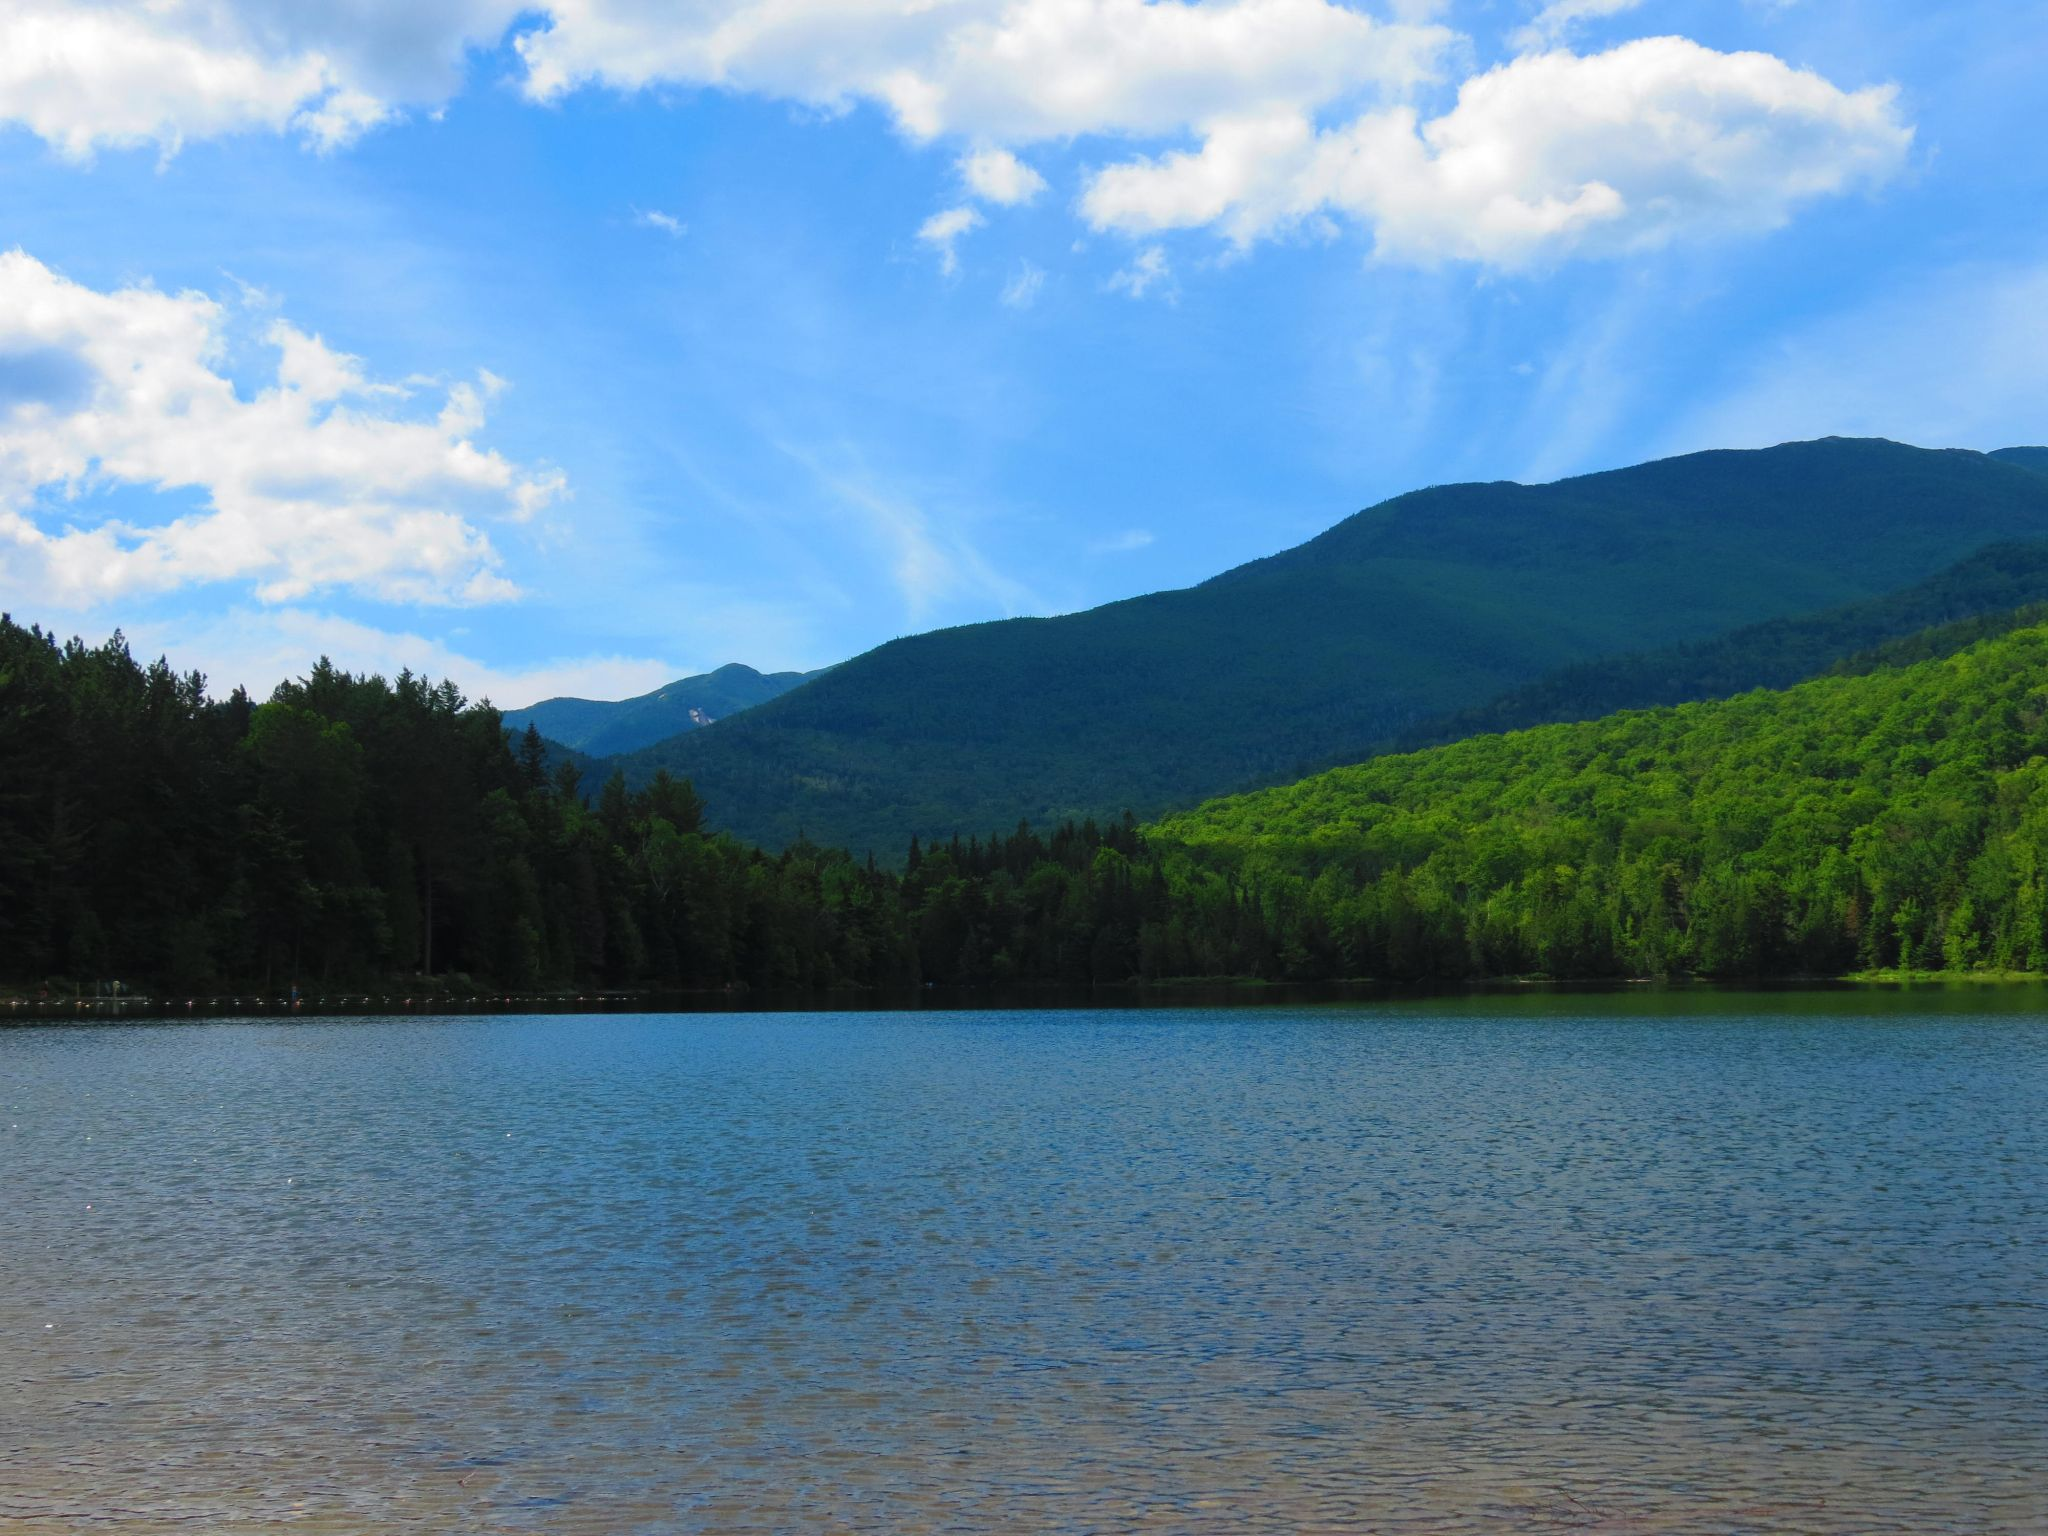 Adirondack State Park, New York State by sweiland